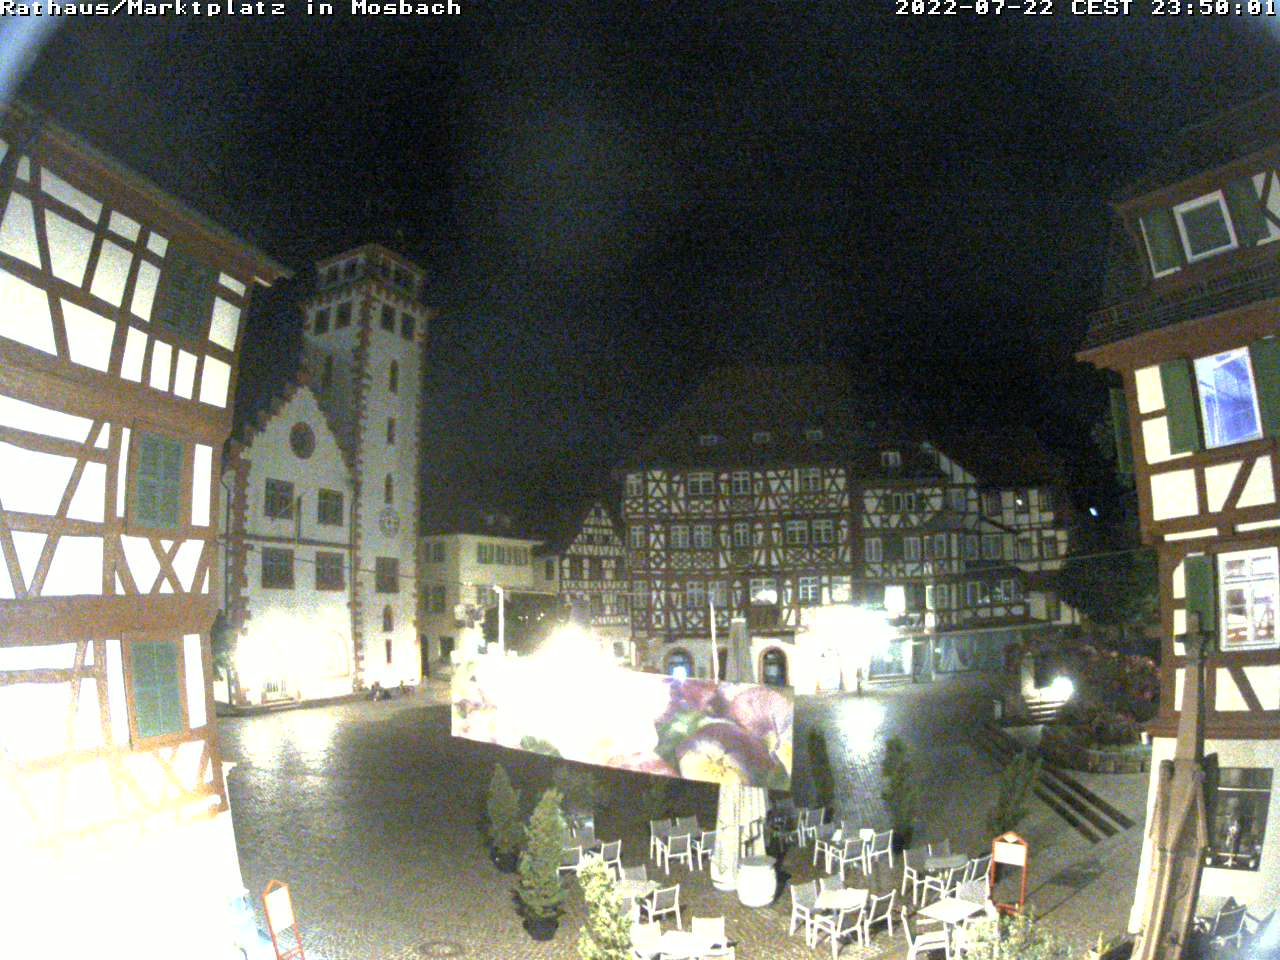 Mosbach Wed. 23:55